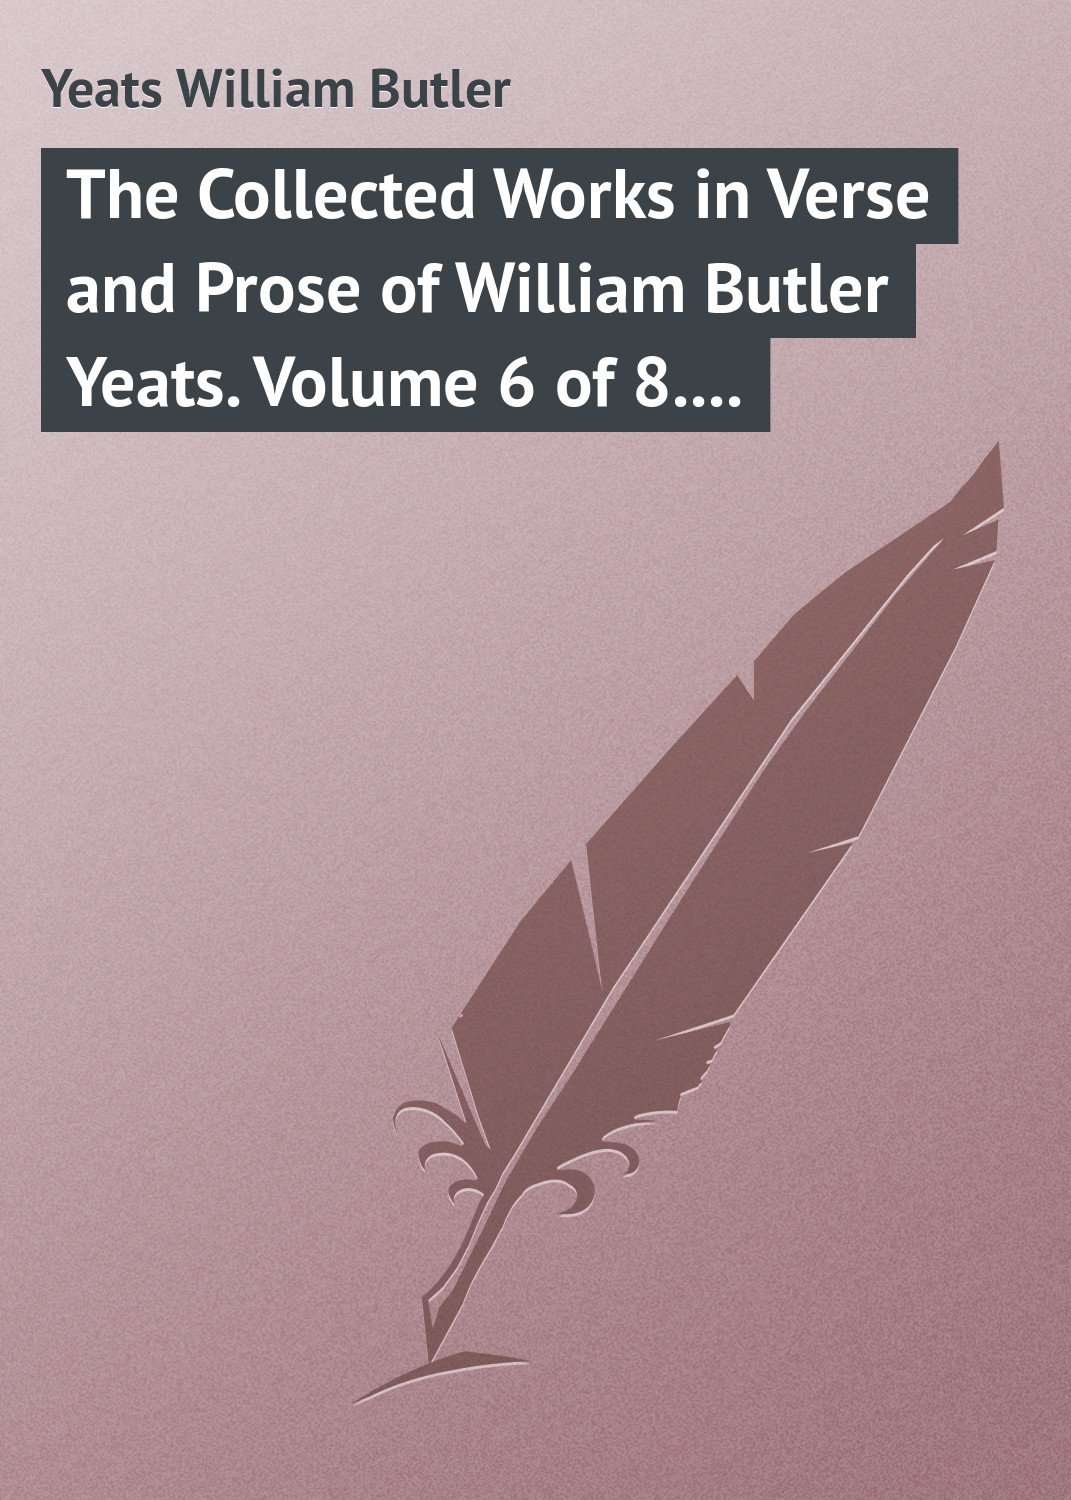 William Butler Yeats The Collected Works in Verse and Prose of William Butler Yeats. Volume 6 of 8. Ideas of Good and Evil william irwin green lantern and philosophy no evil shall escape this book